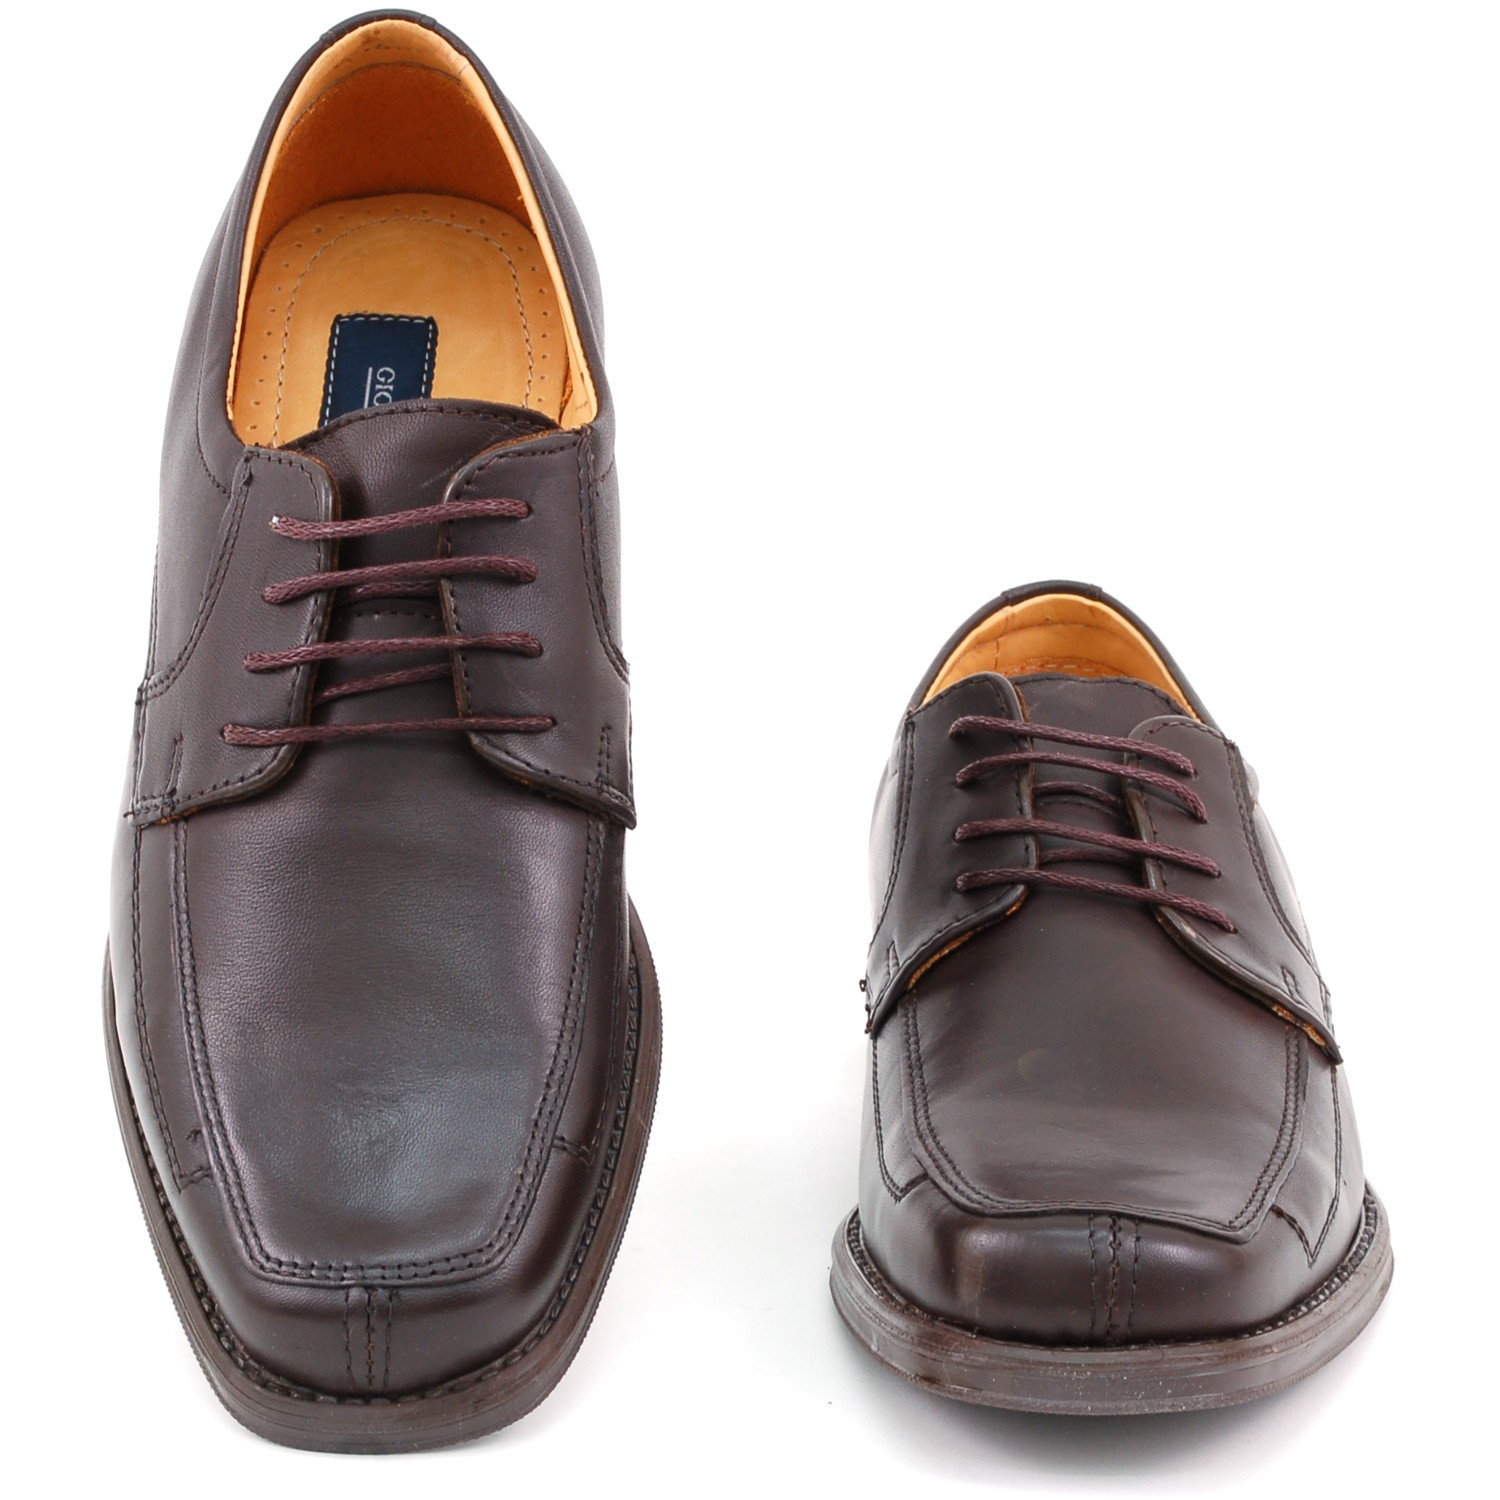 Mens-Lace-Up-Oxfords-Dress-Shoes-Genuine-Leather-Moc-Toe-Giorgio-Brutini-Padded thumbnail 18